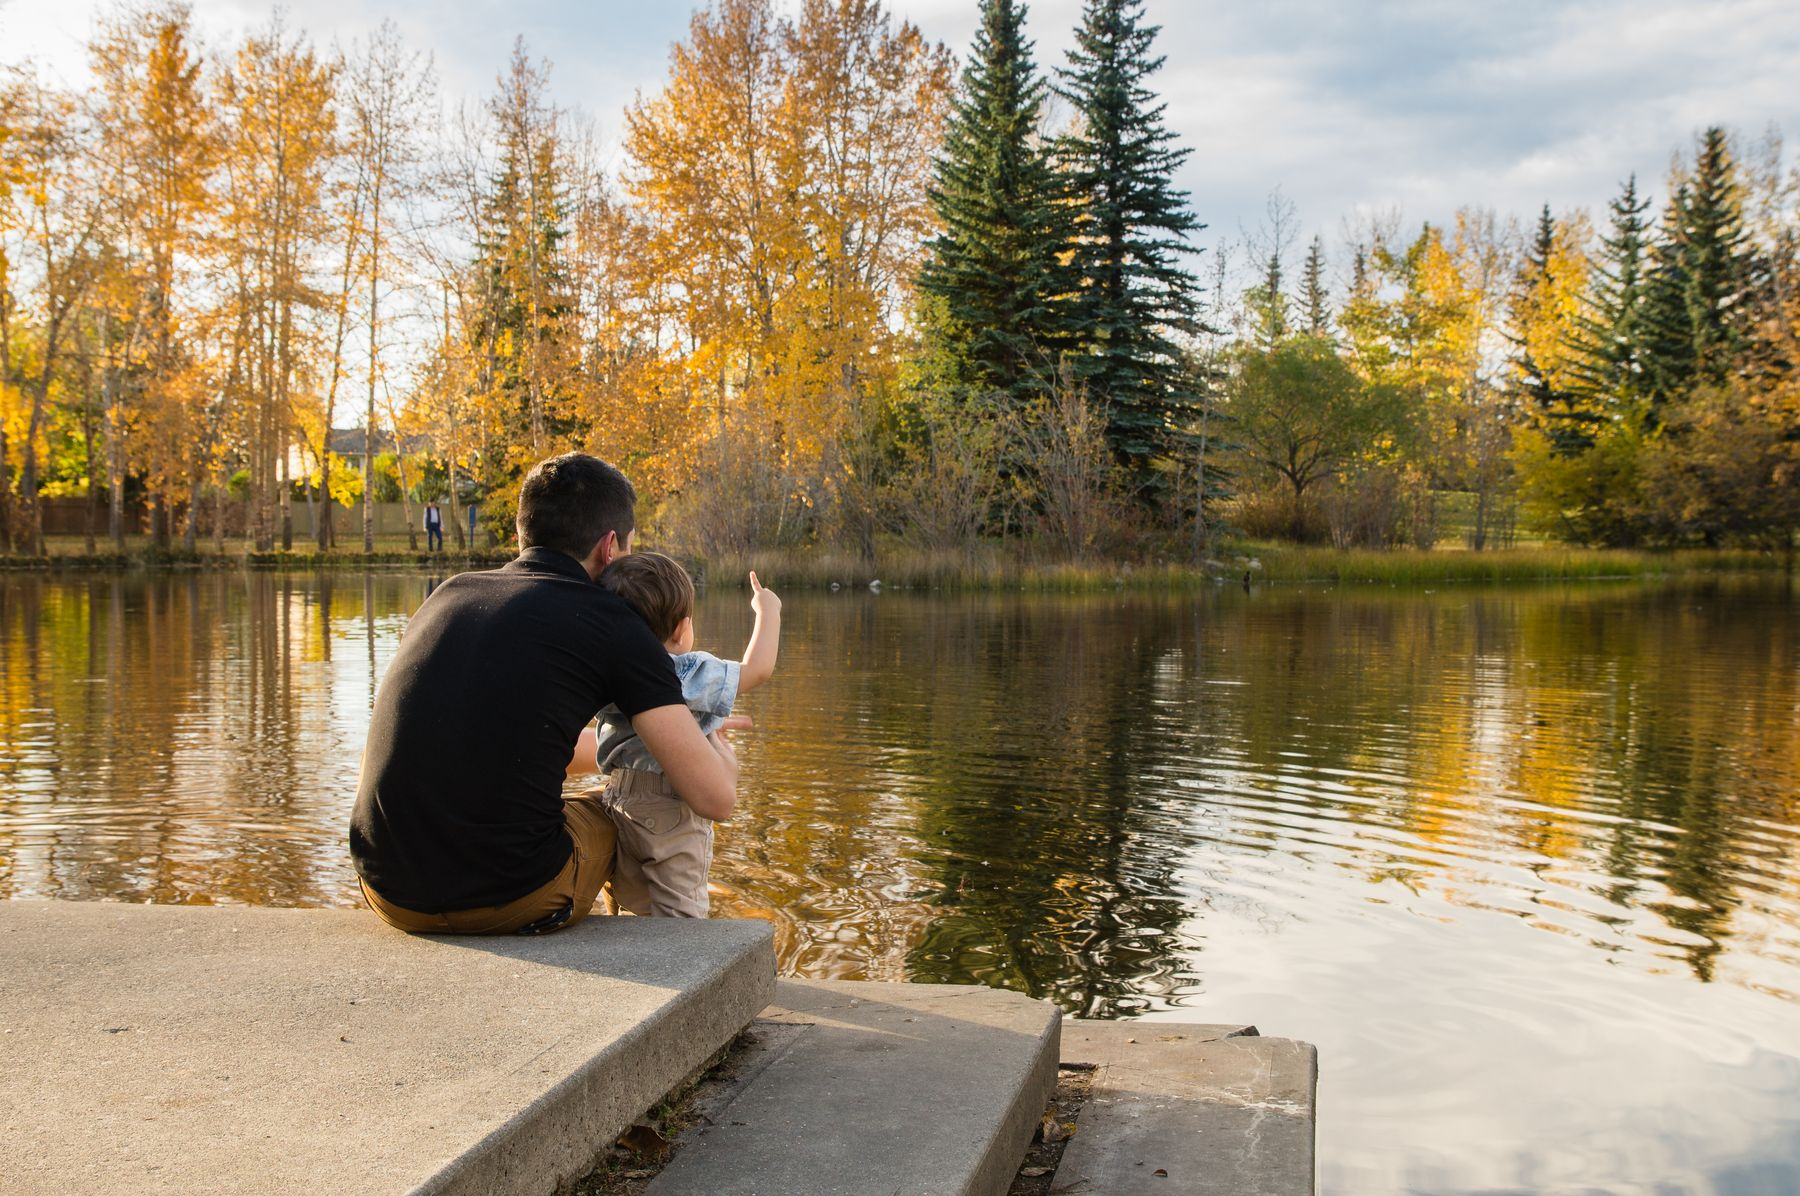 man and boy by a lake pointing at the fall leaves